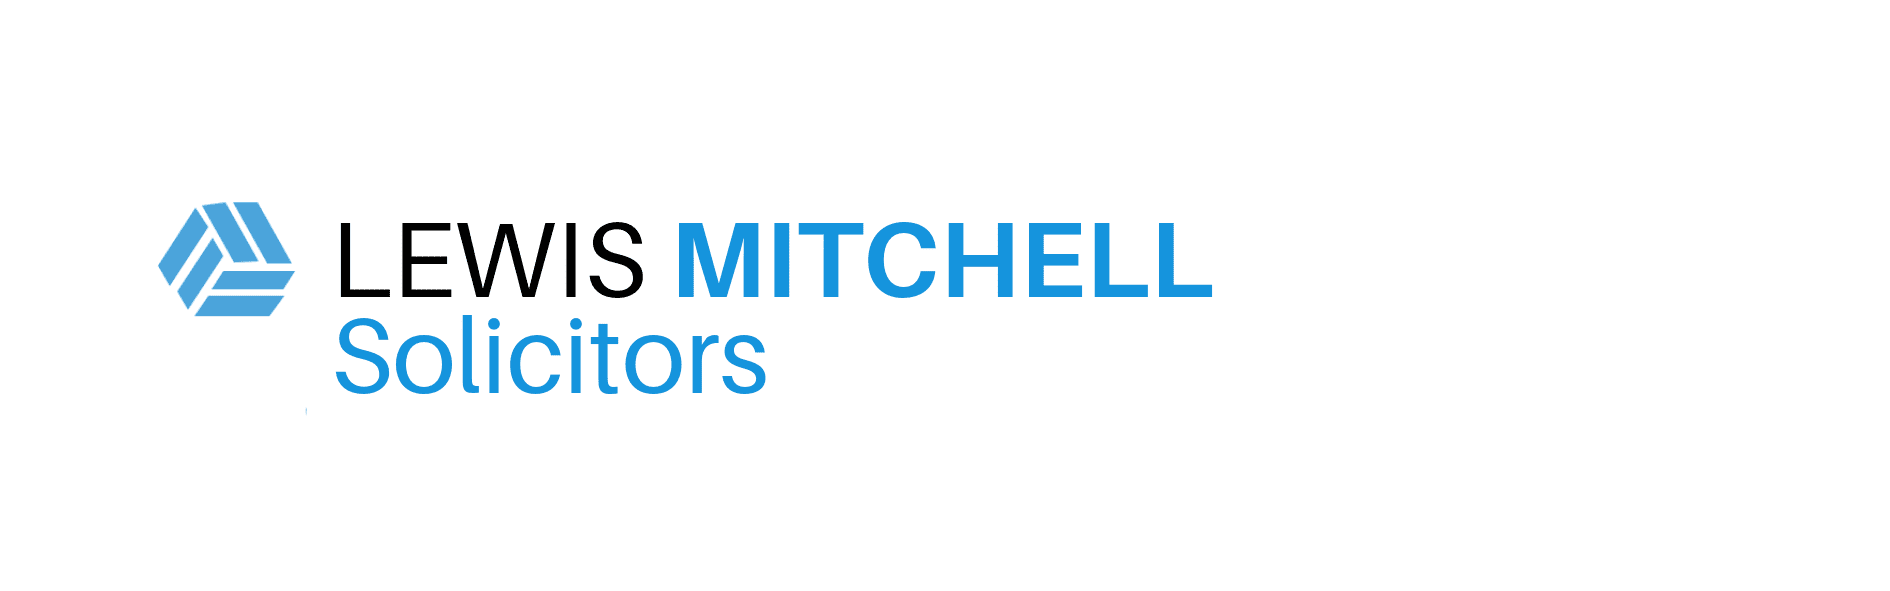 Lewis Mitchell Solicitors